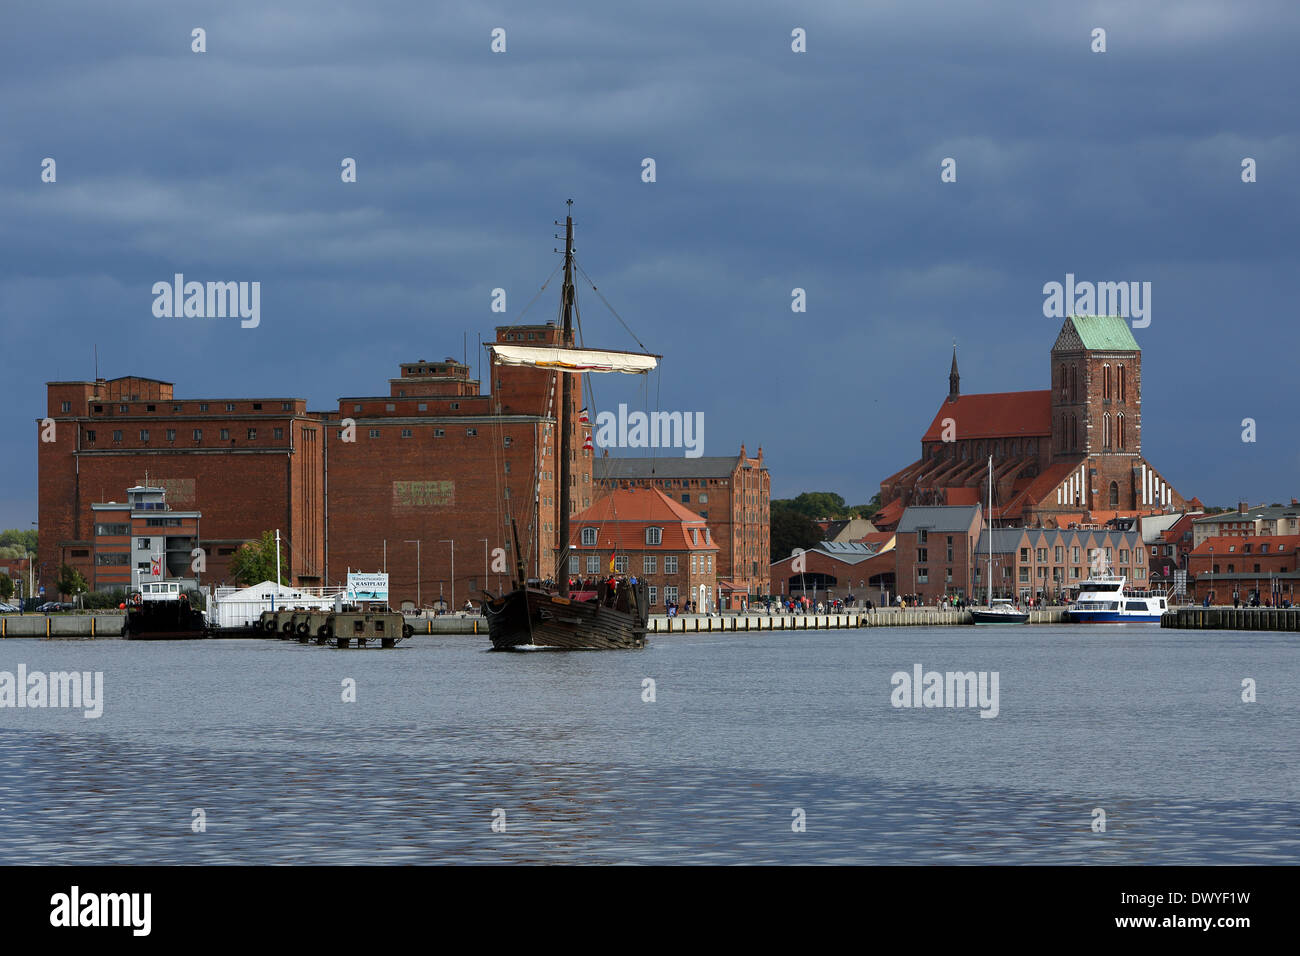 Wismar, Germany, overlooking the harbor and the Church of Saint Nicholas - Stock Image